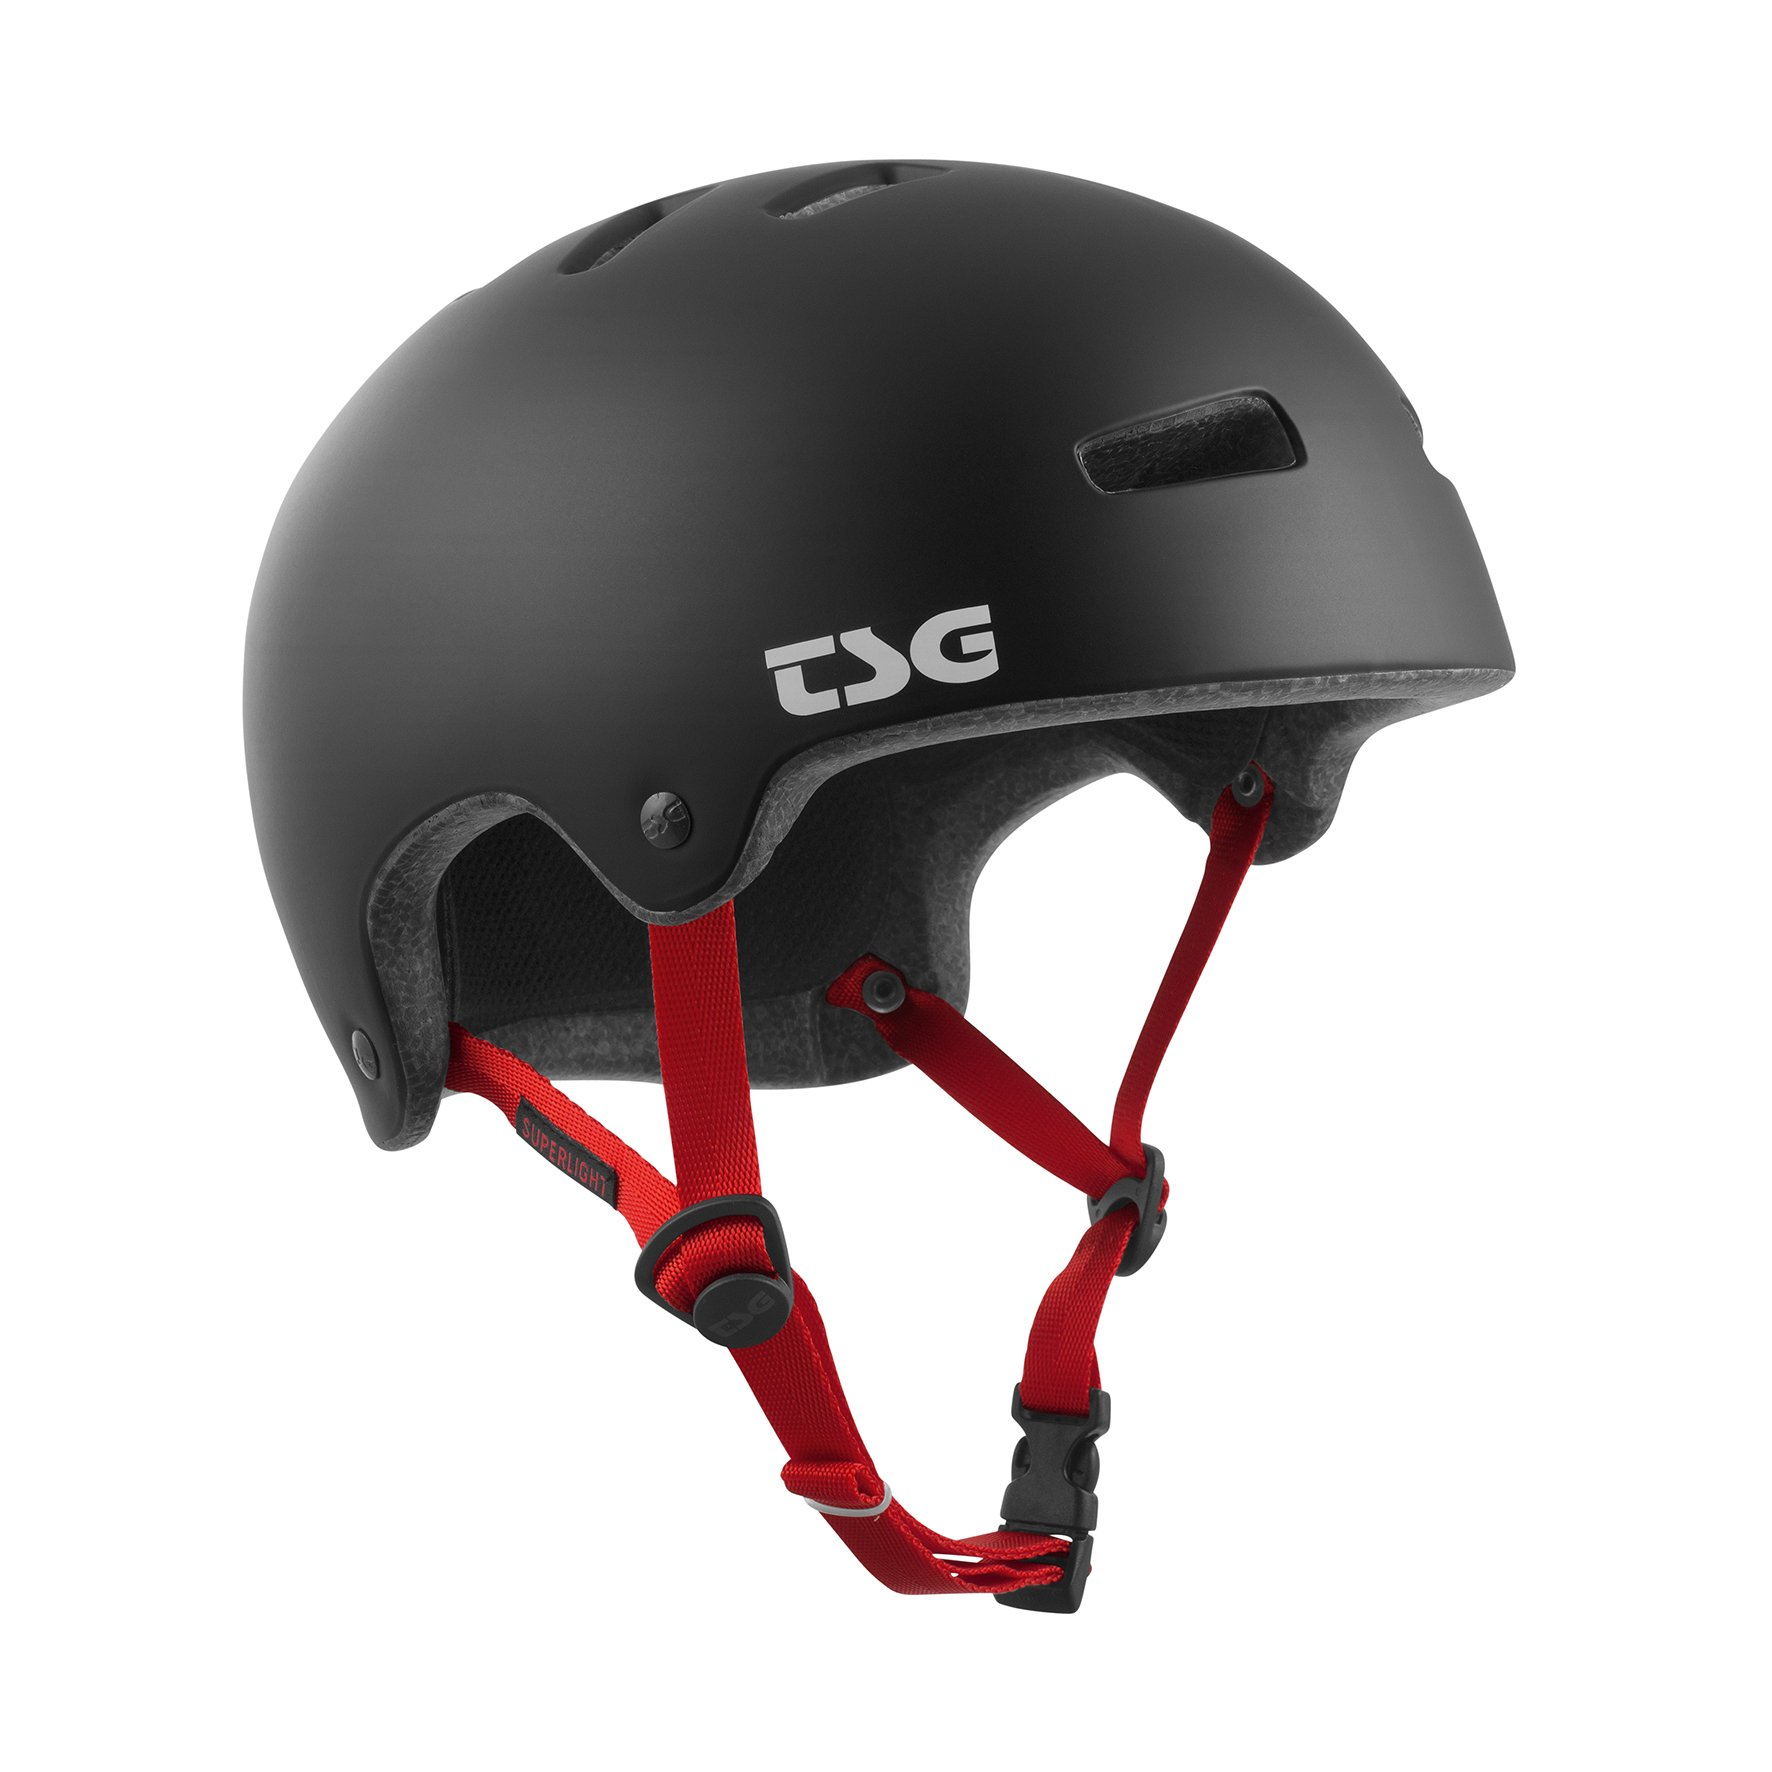 TSG - Superlight Solid Color - (satin black, XXL 59-60.5 cm) Helmet for Bicycle Skateboard by TSG